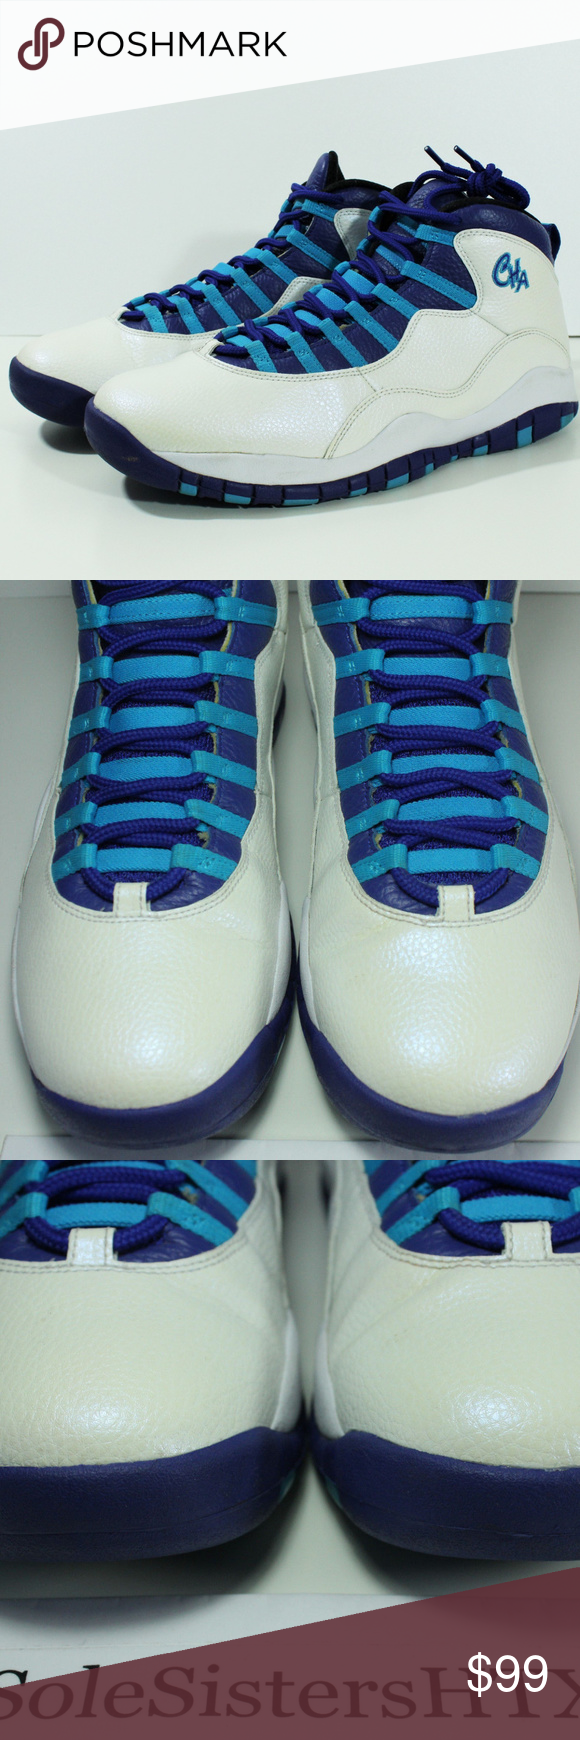 new concept e83d6 c27d2 Nike Air Jordan Retro Charlotte Hornets X 10 Sz 13 100% Authentic Nike Air  Jordan Retro Charlotte Hornets X 11 310805-107 Mens SZ 13 USED NO BOX (USED  ...